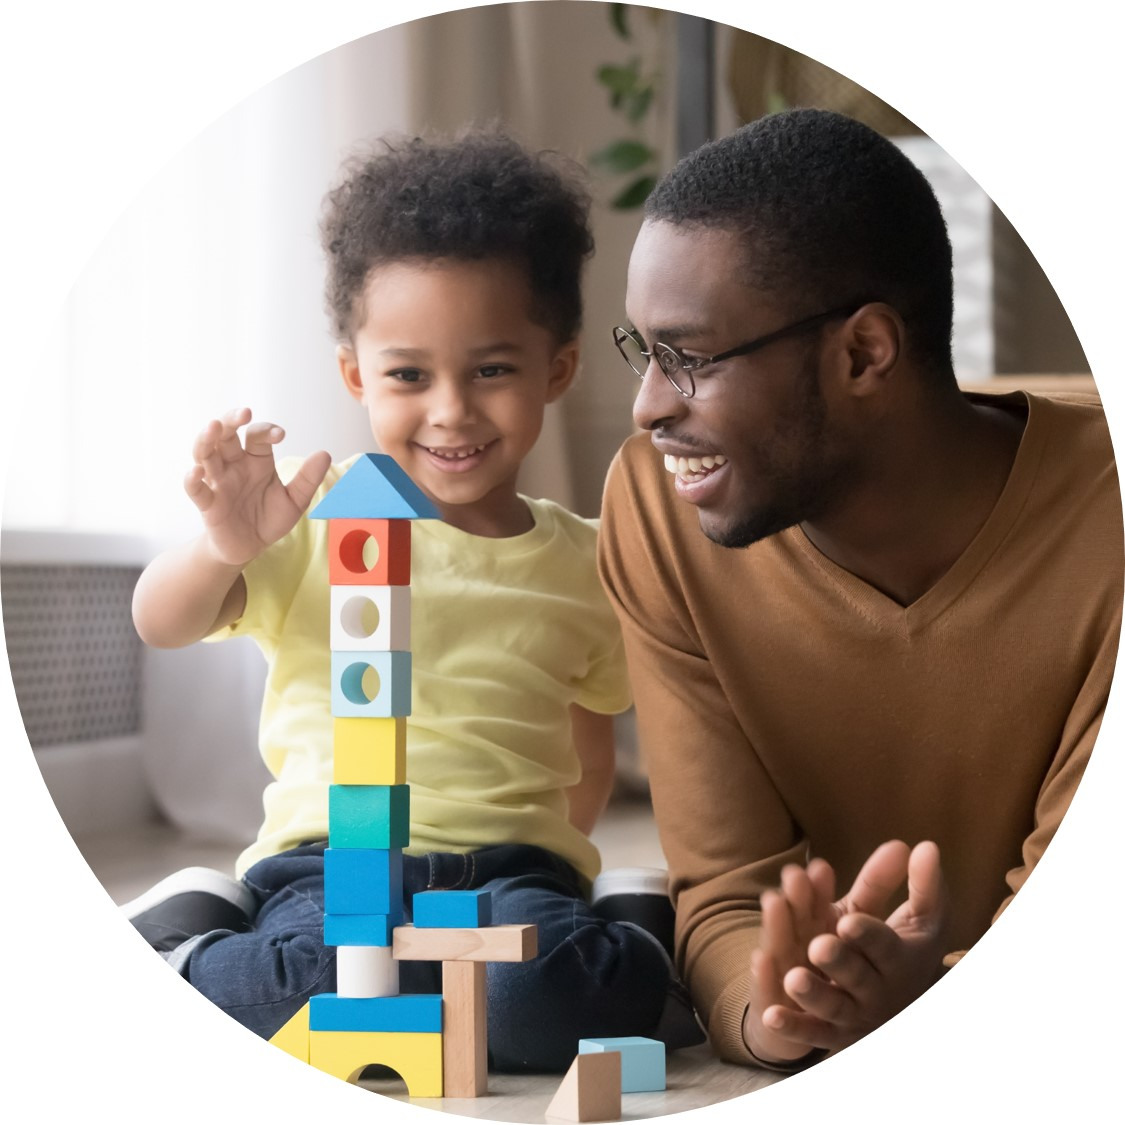 Black man smiles and claps as small Black child plays with blocks